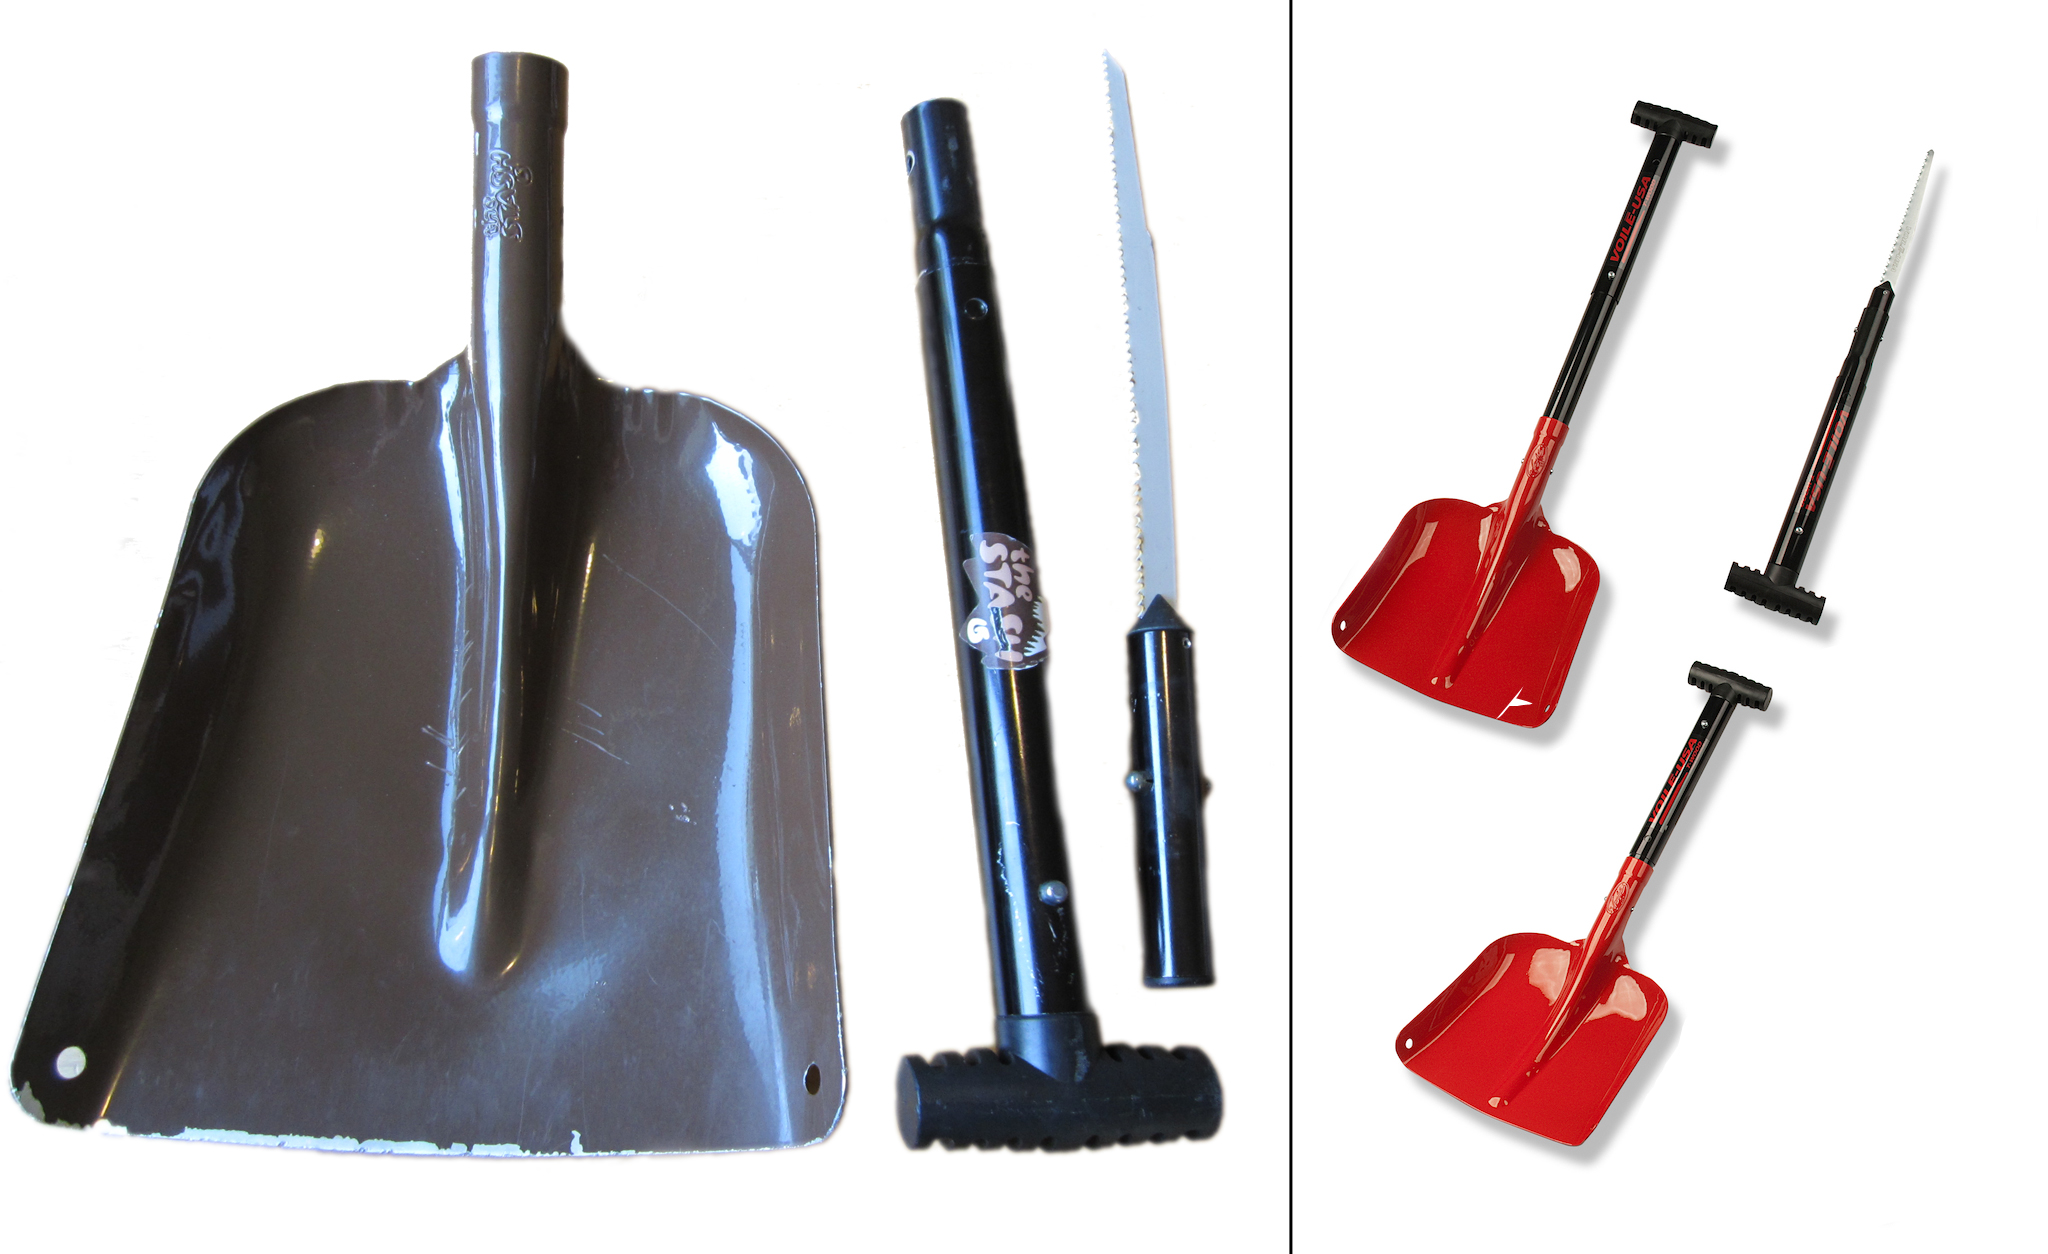 Shovel: Voile T-Wood avalanche shovel